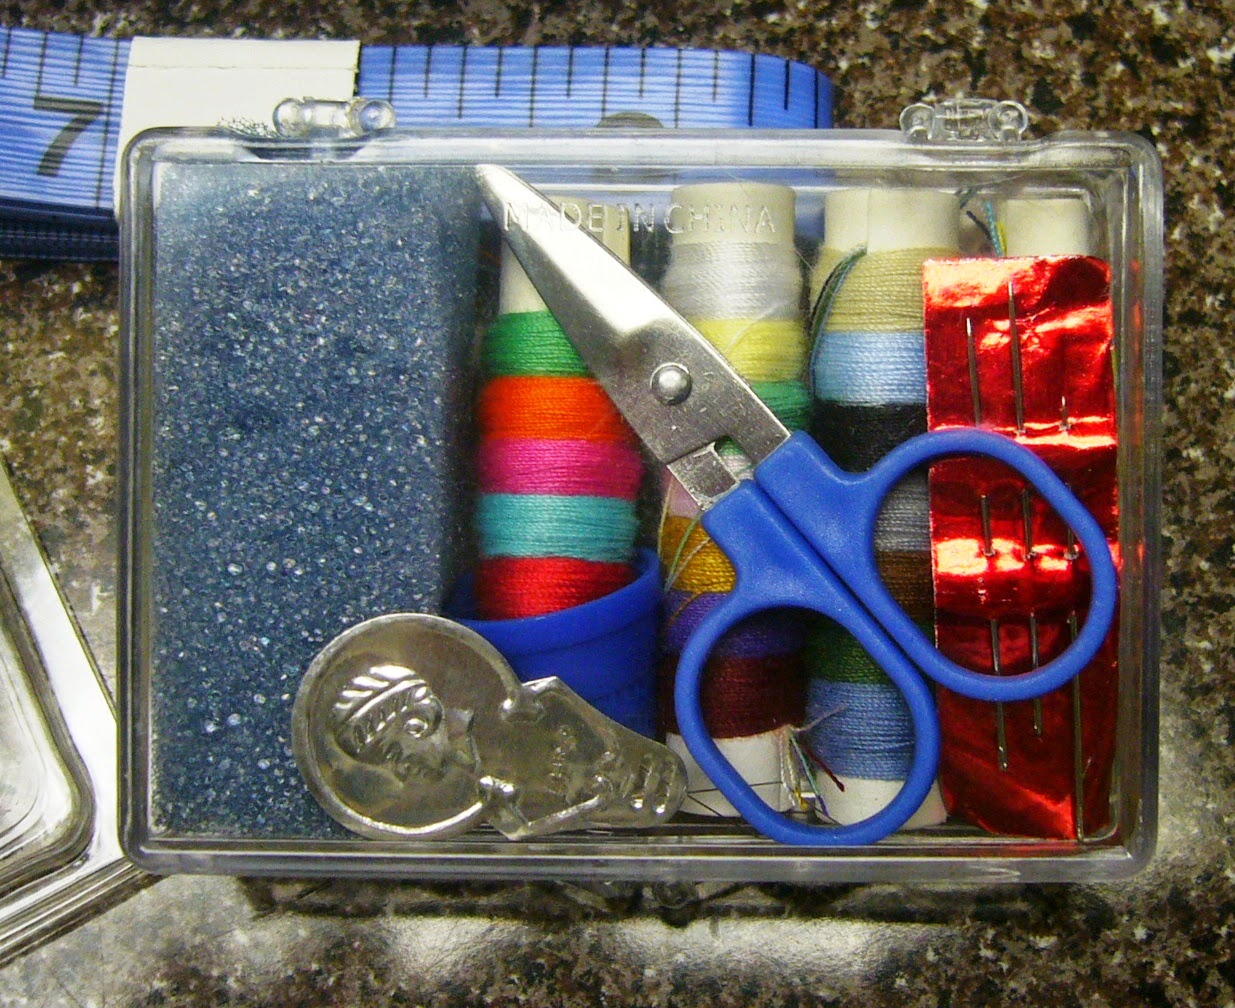 Sewing and mending kit.